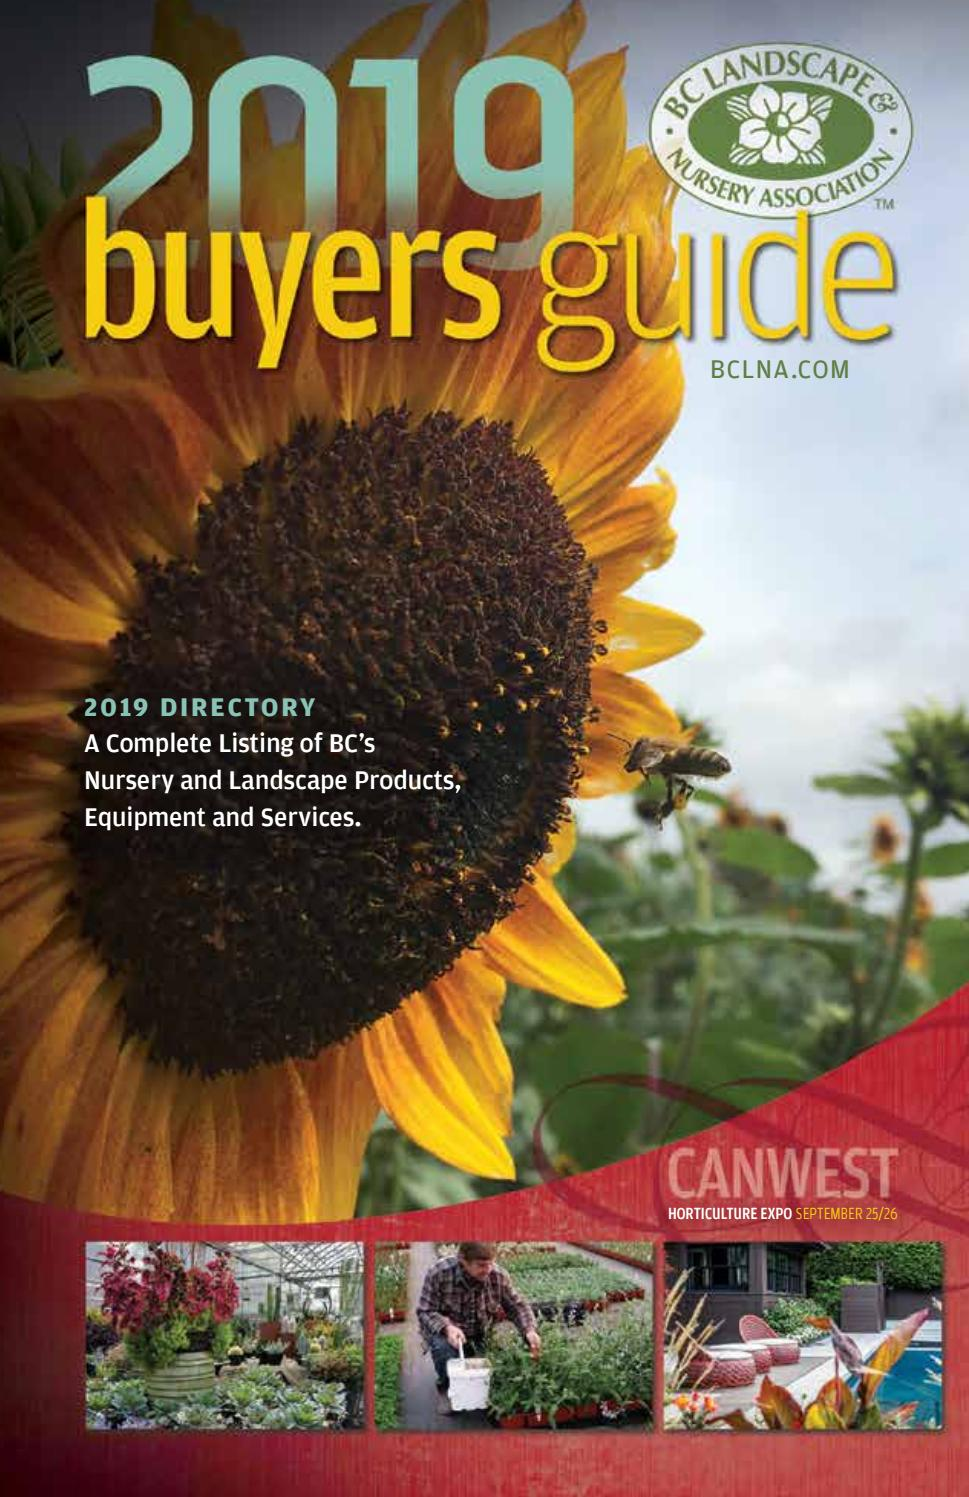 ac2b415873a 2019 BCLNA Buyers Guide by Michelle Linford - issuu